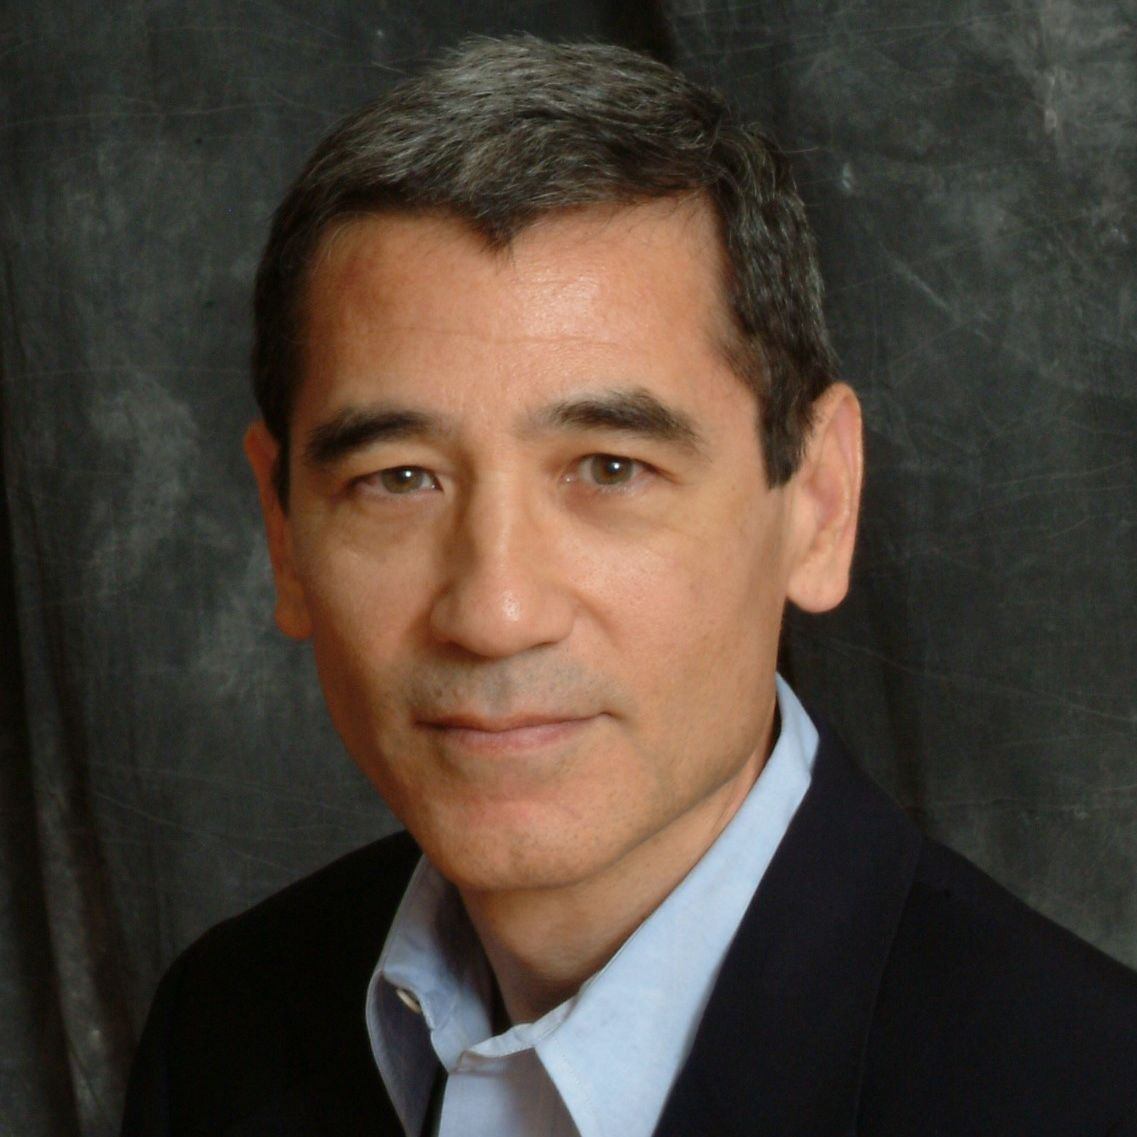 Photo: Gordon Chang